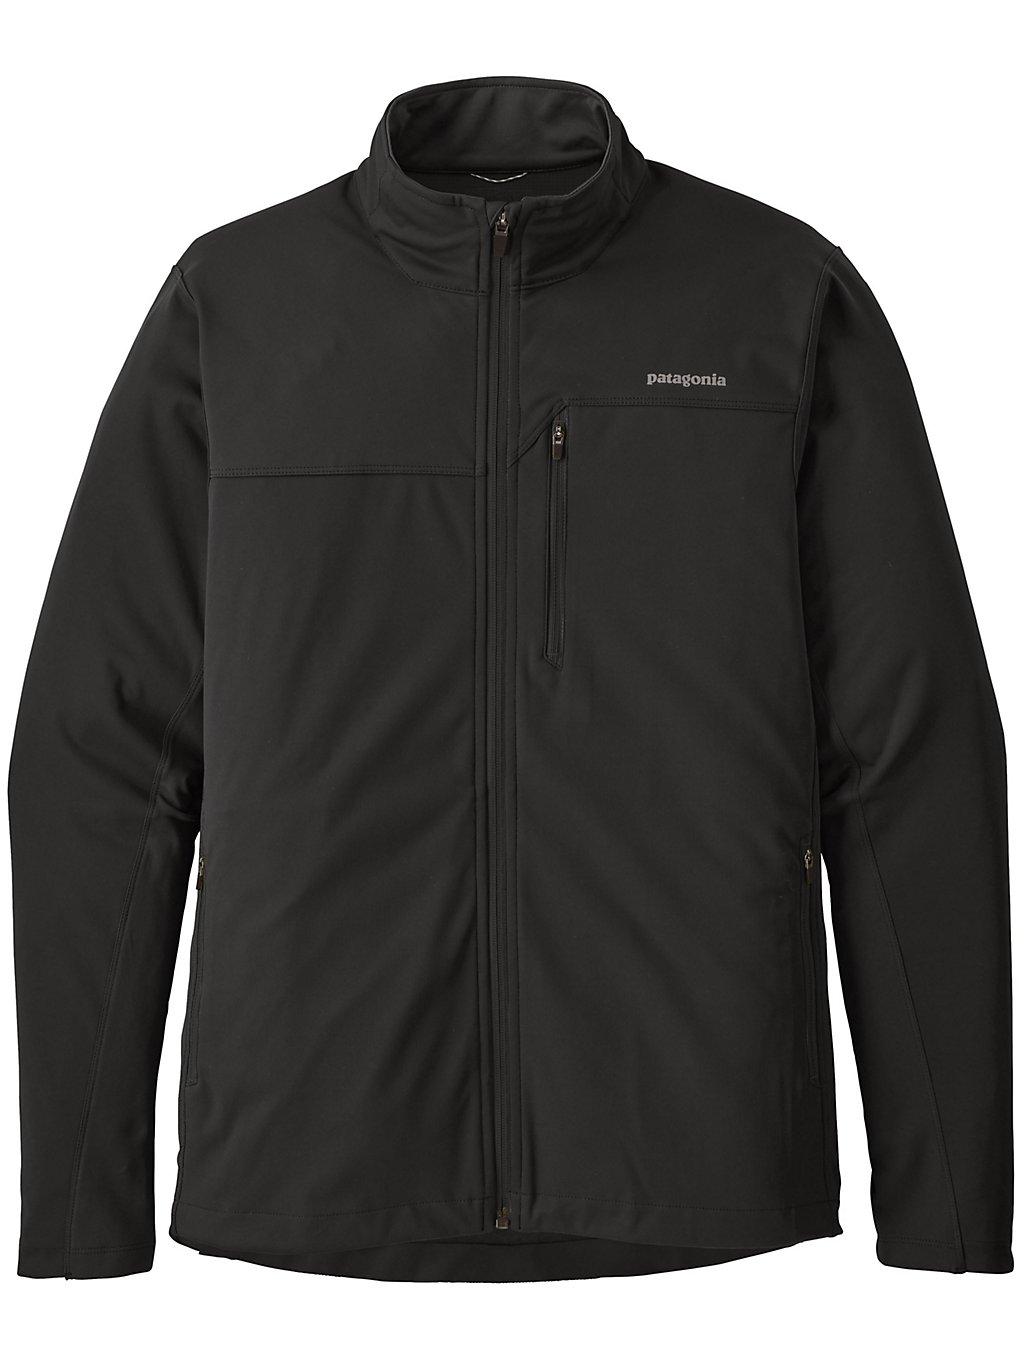 Patagonia Wind Shield Fleece Jacket